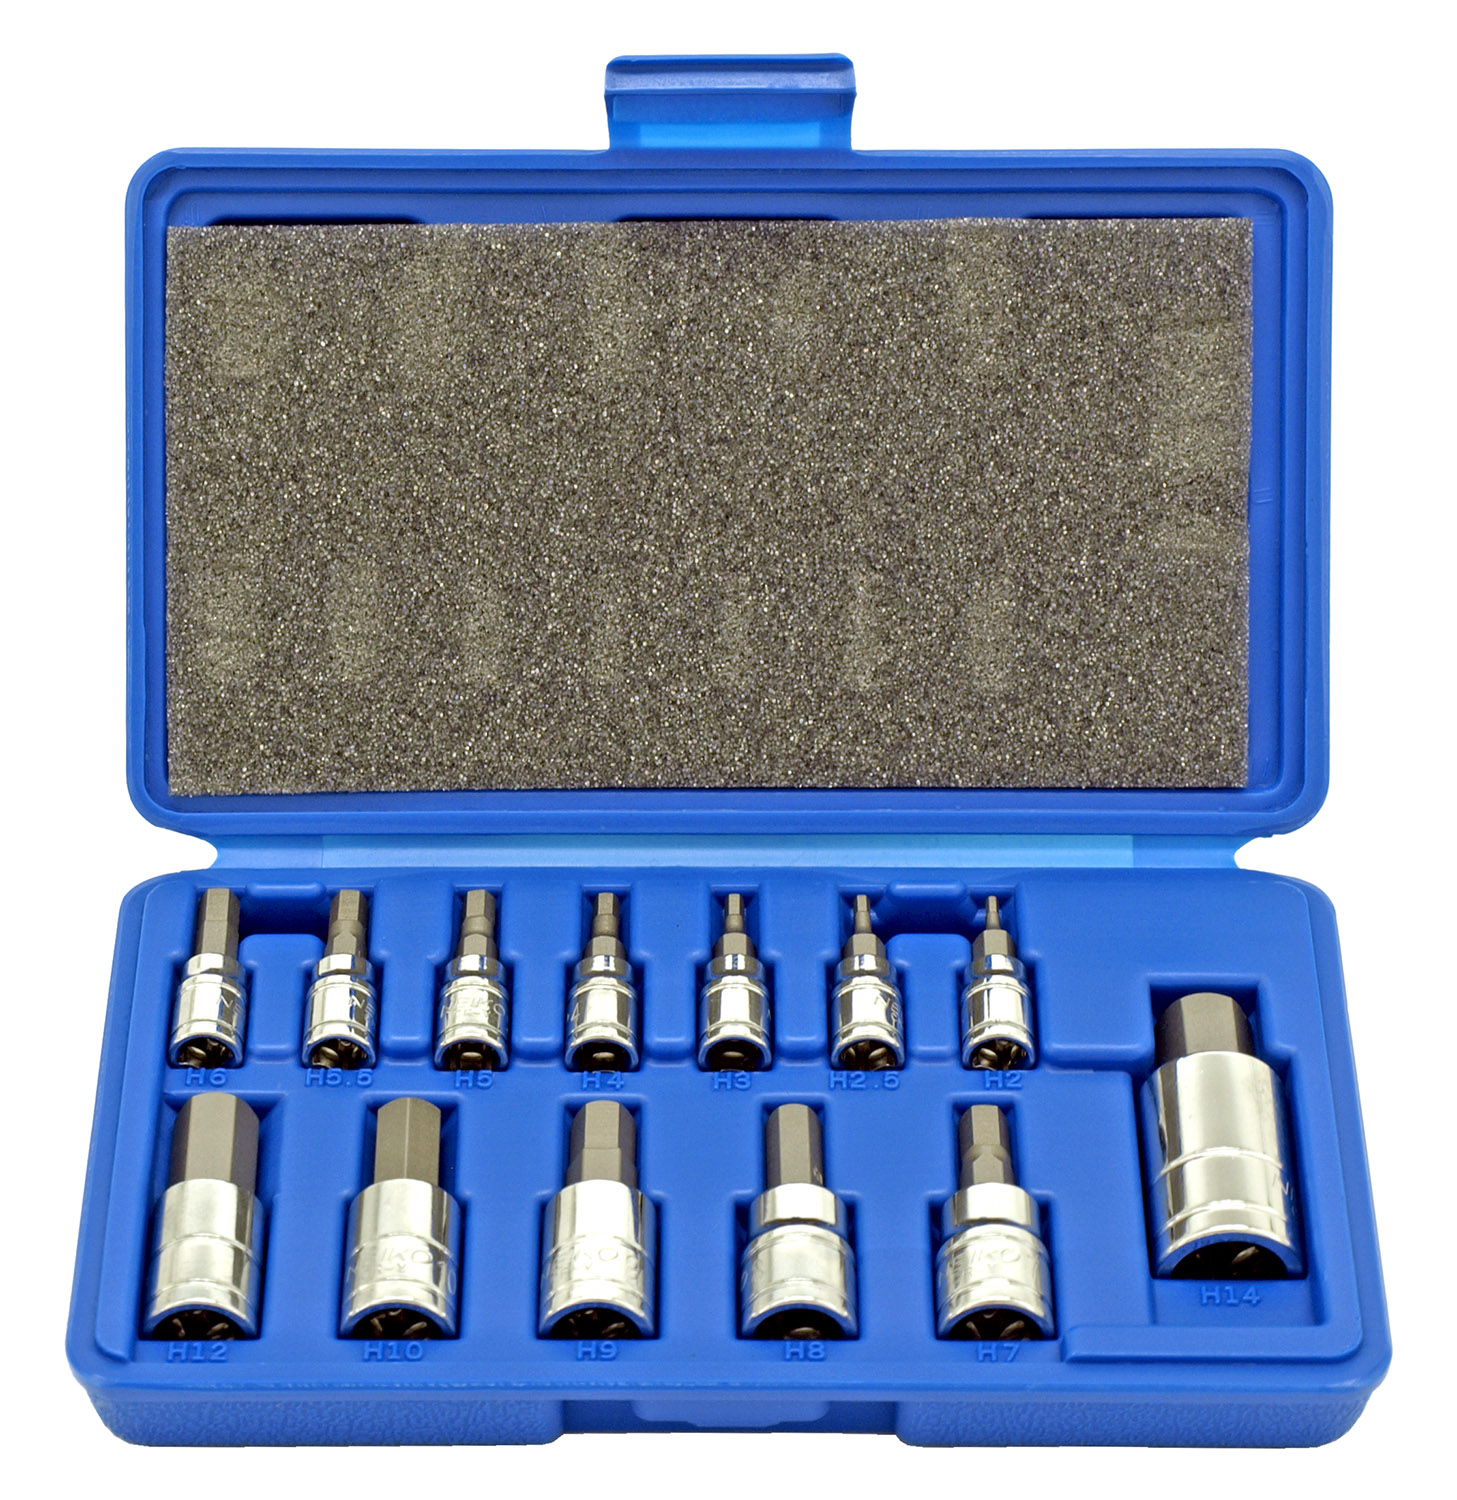 Neiko 13 - pc. Hex Bit Socket Set